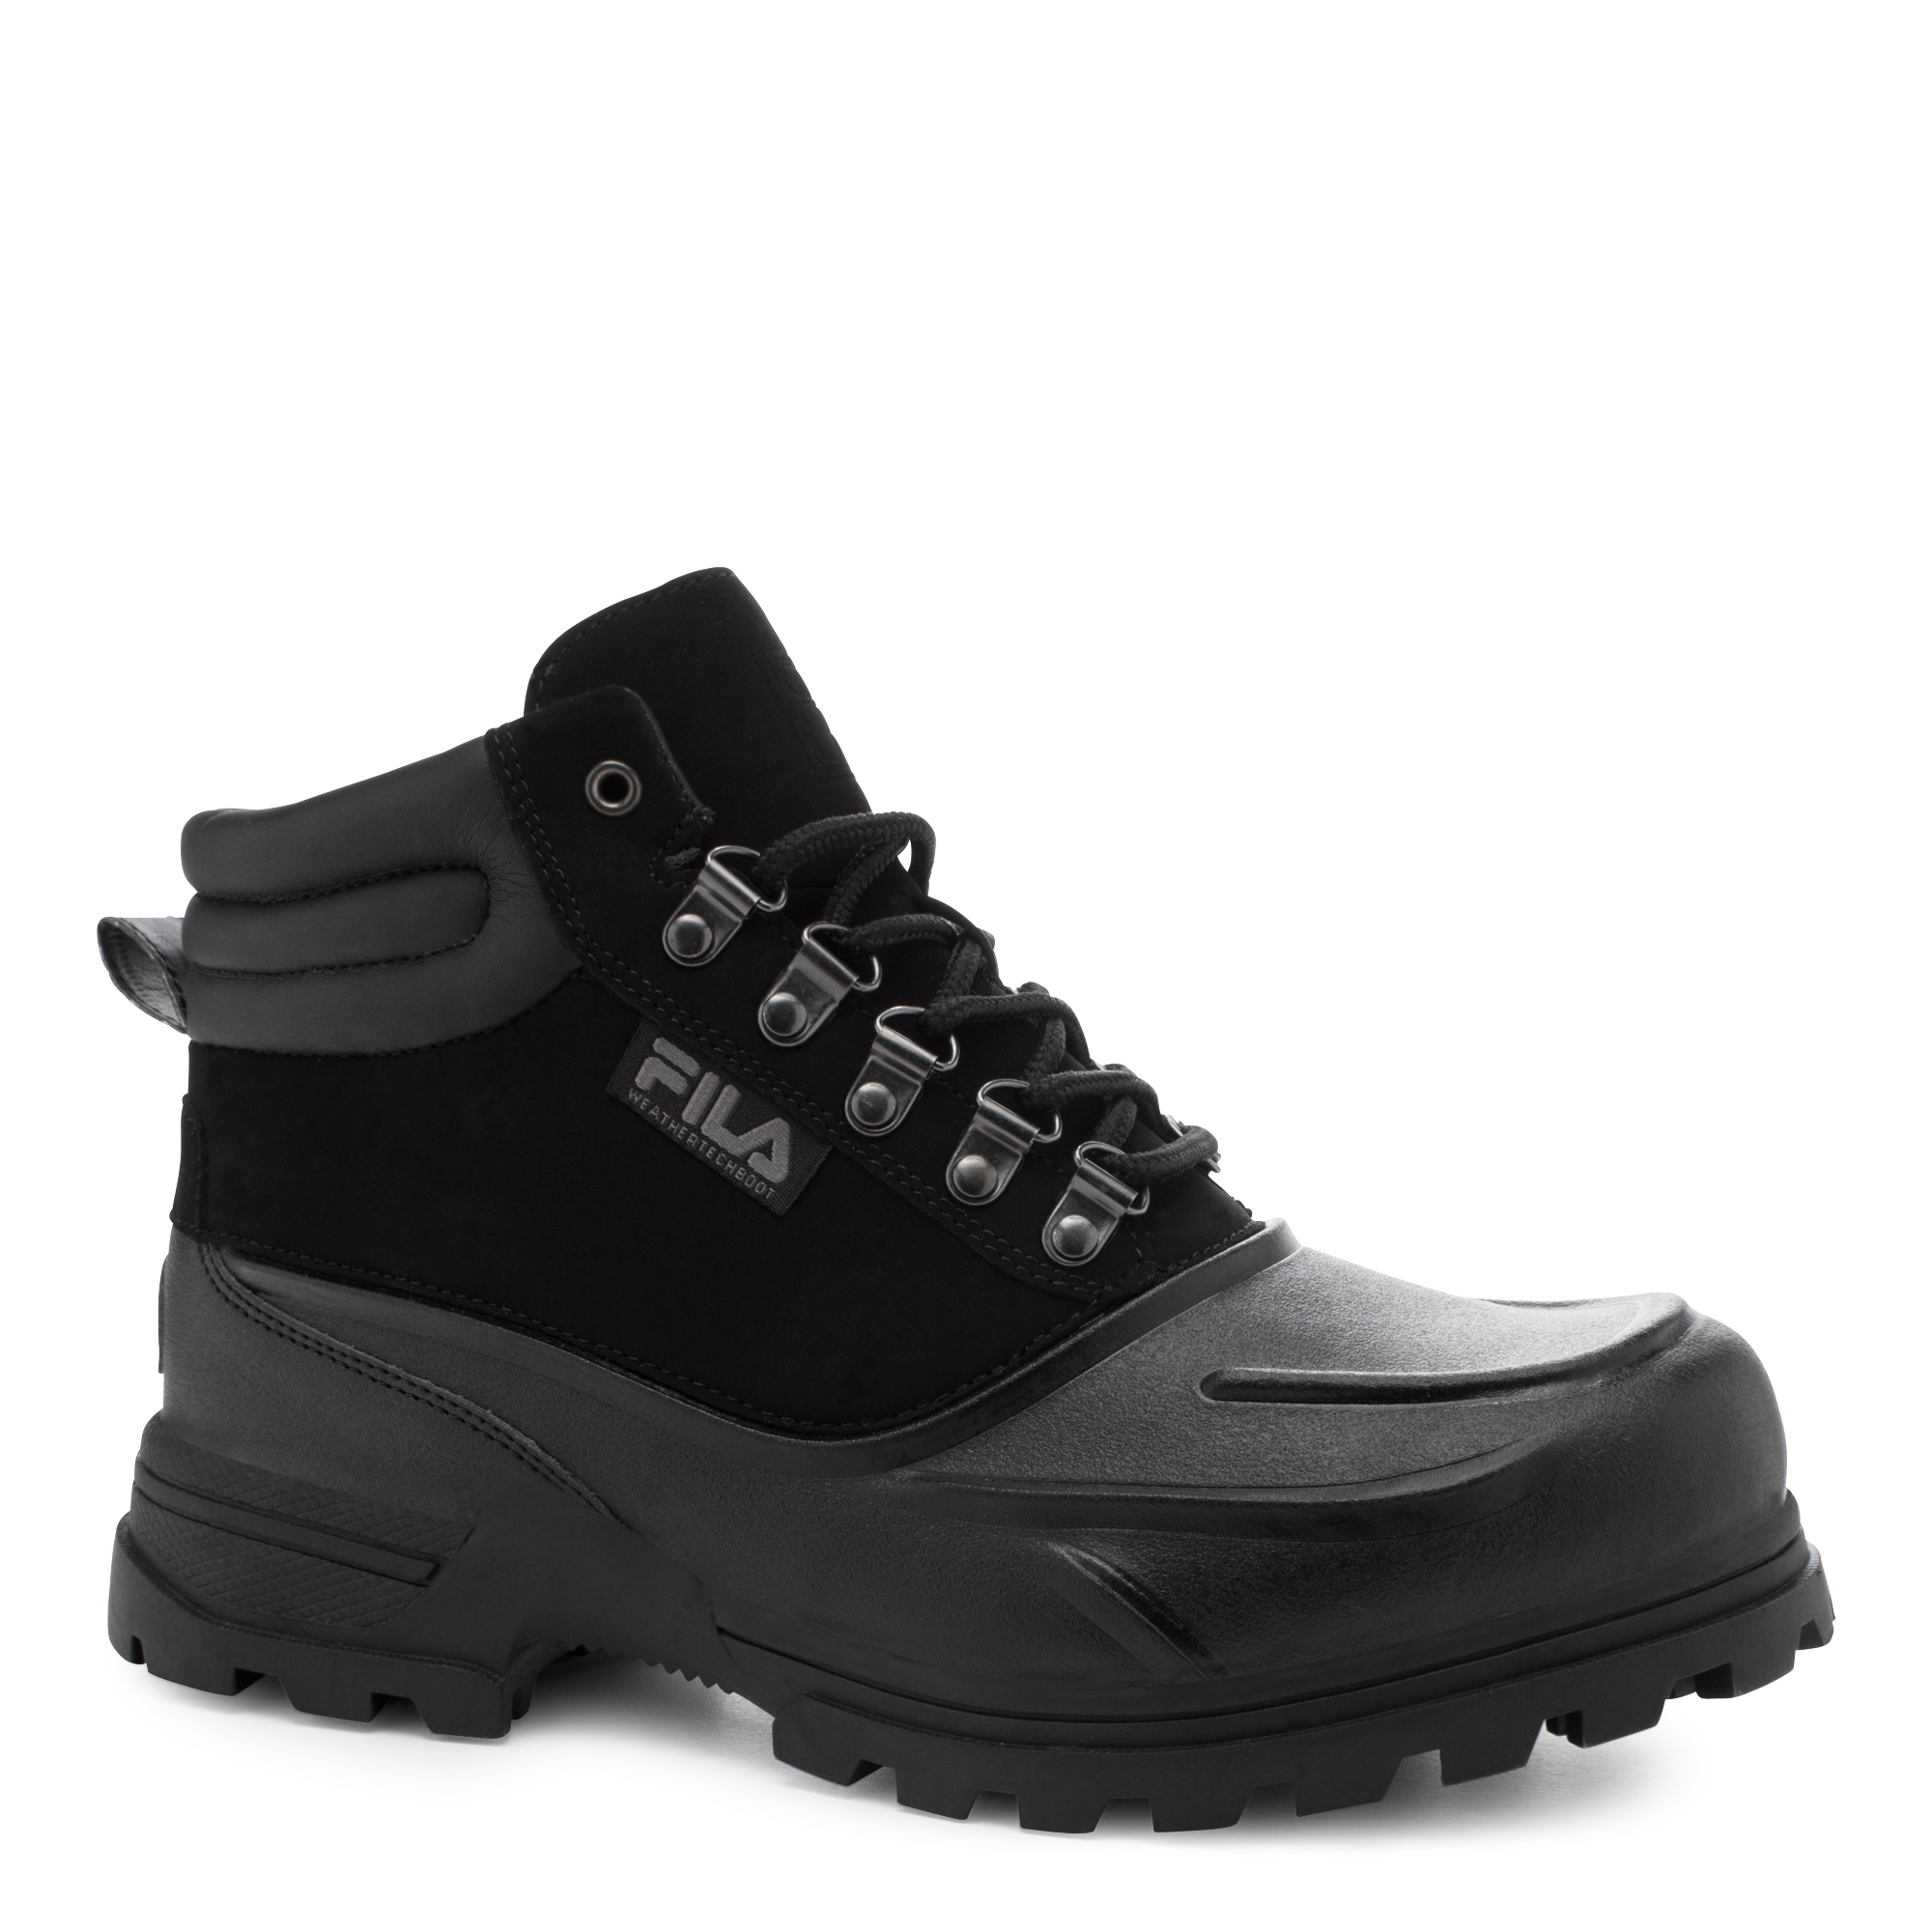 Fila Men's Weathertec Boot | eBay